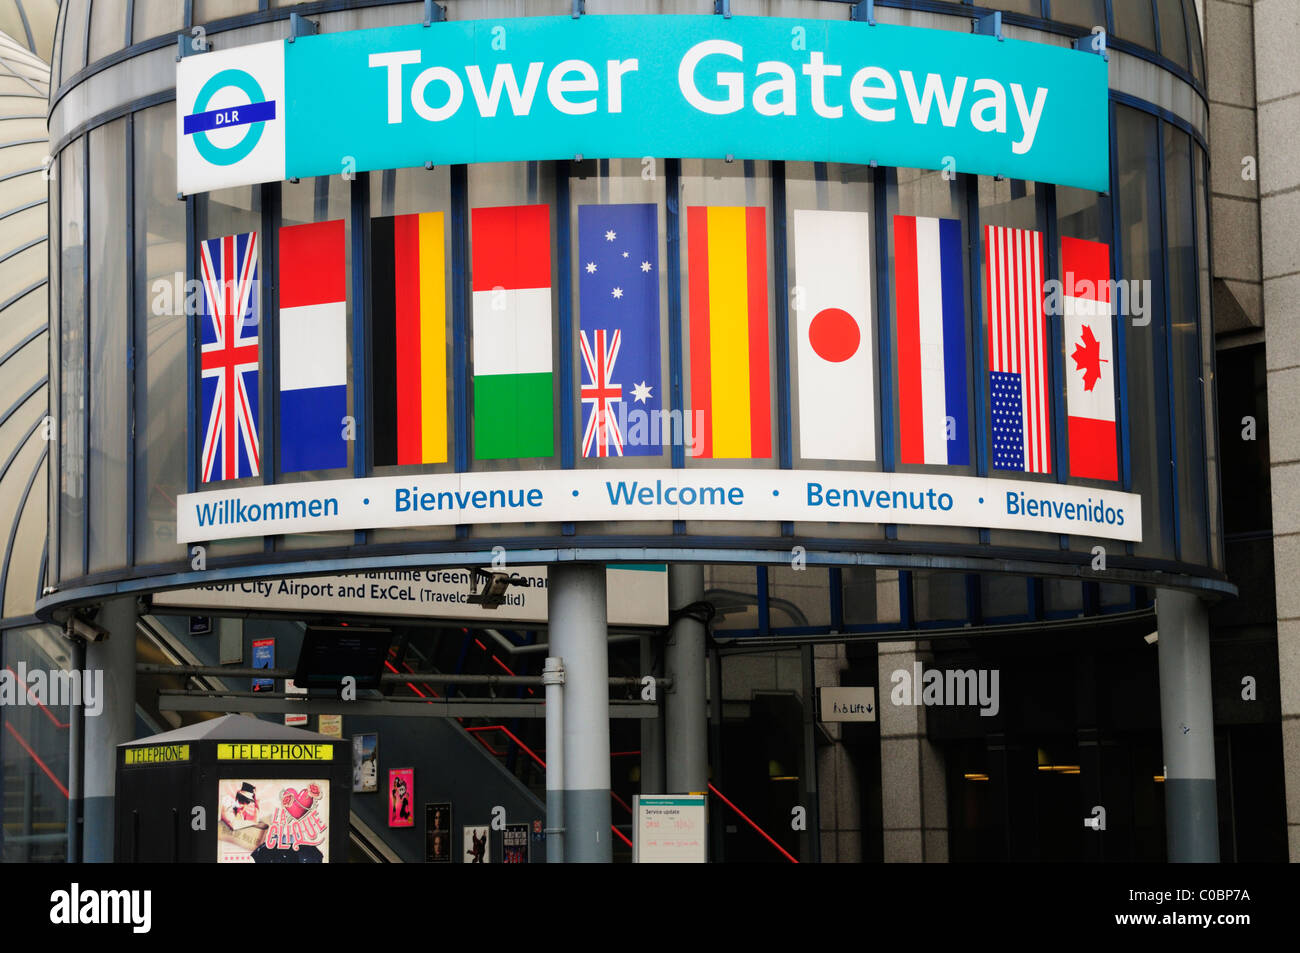 Entrance to Tower Gateway Docklands Light Railway DLR Station, Tower Hill, London, England, UK - Stock Image